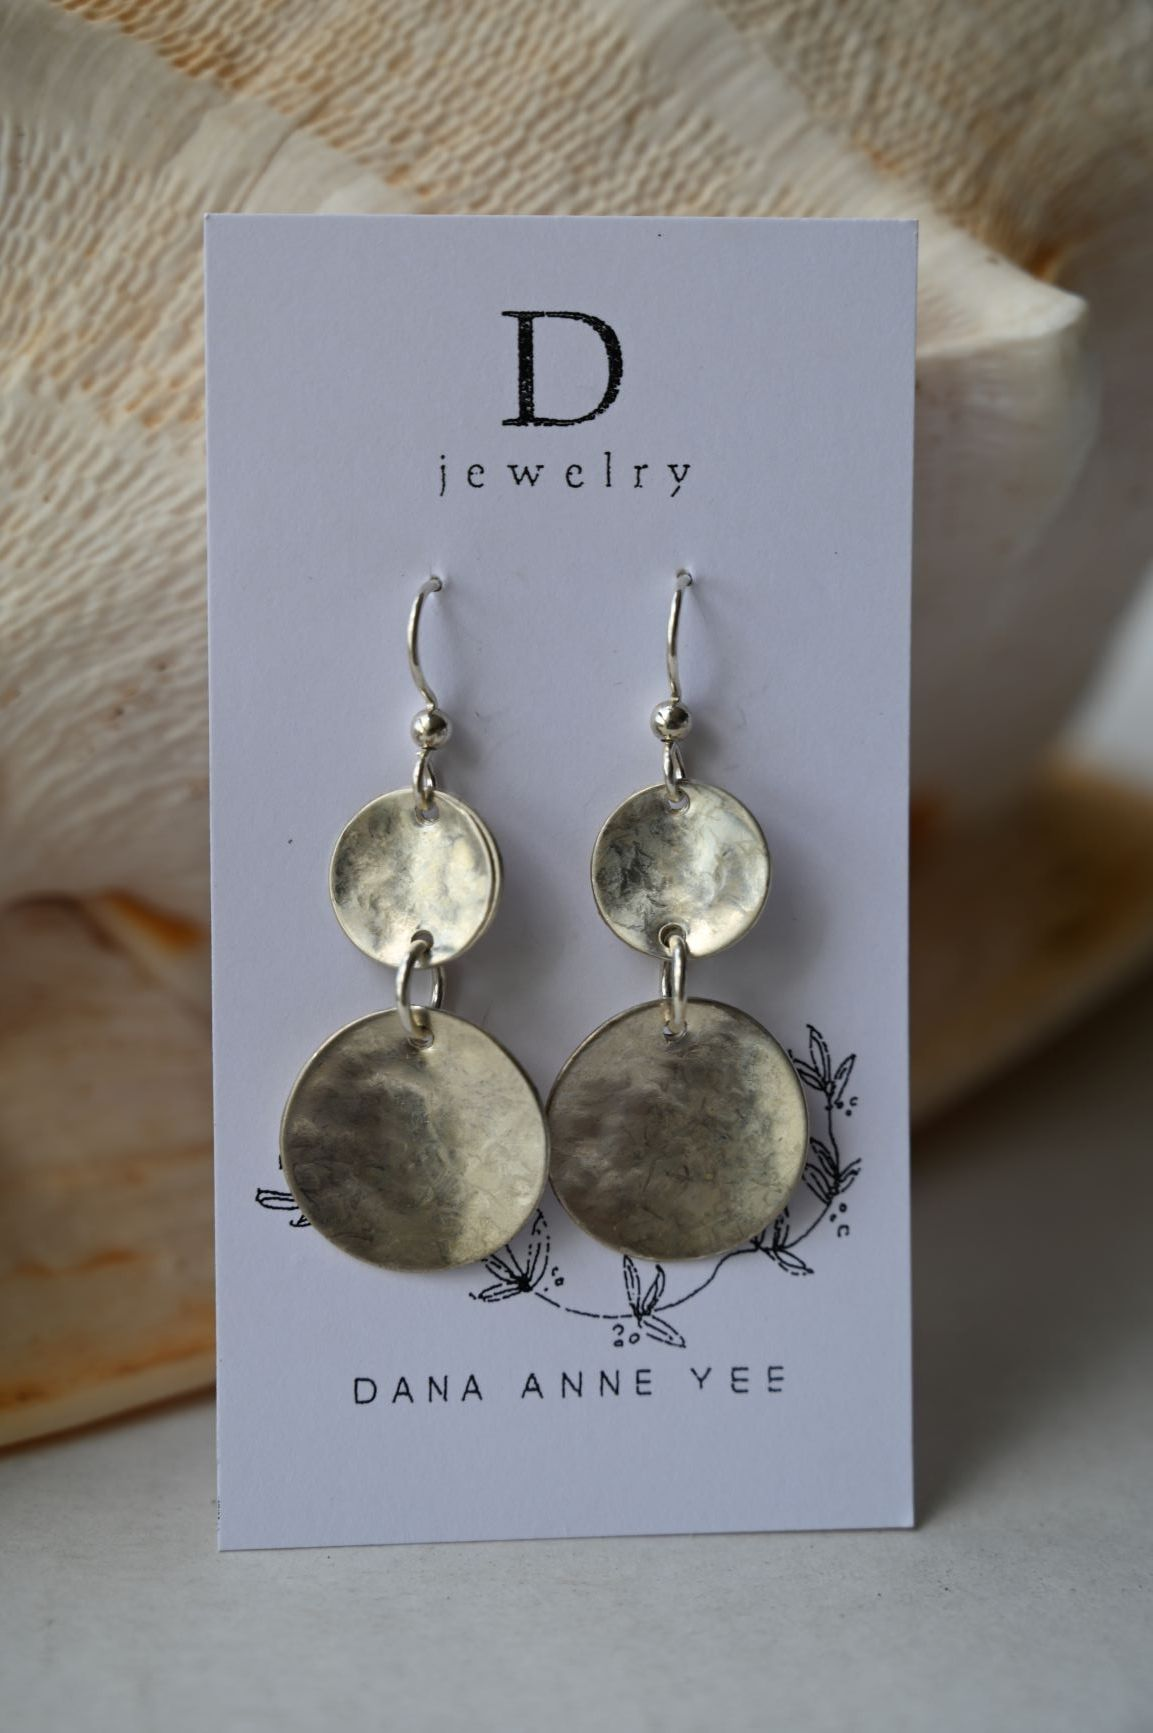 DAY-126 S - 2 Moons, Sterling Silver, Earrings